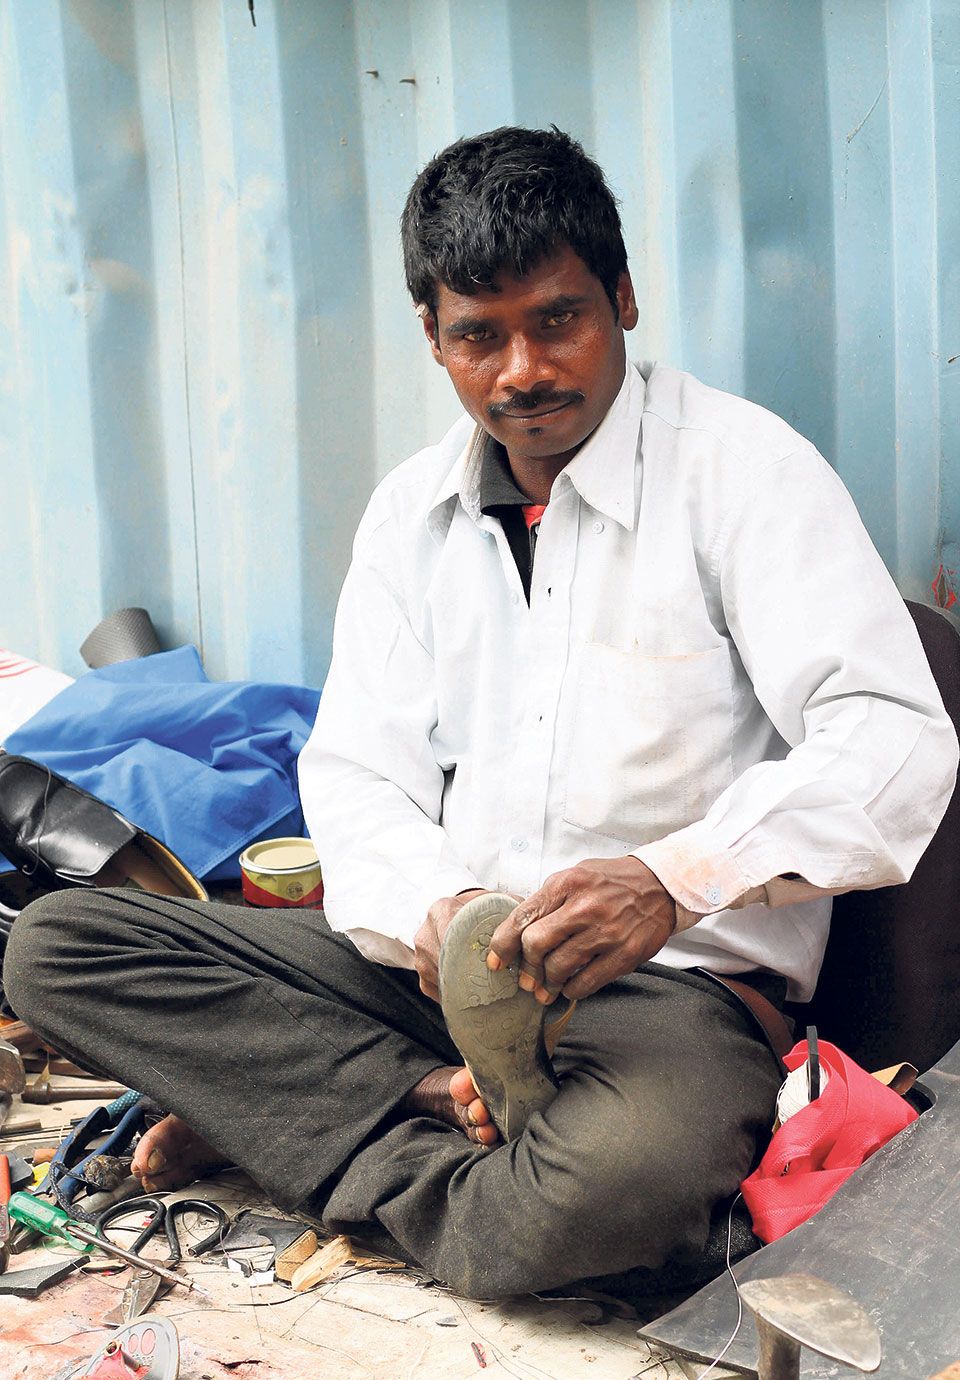 Souls of My City: Mending Soles